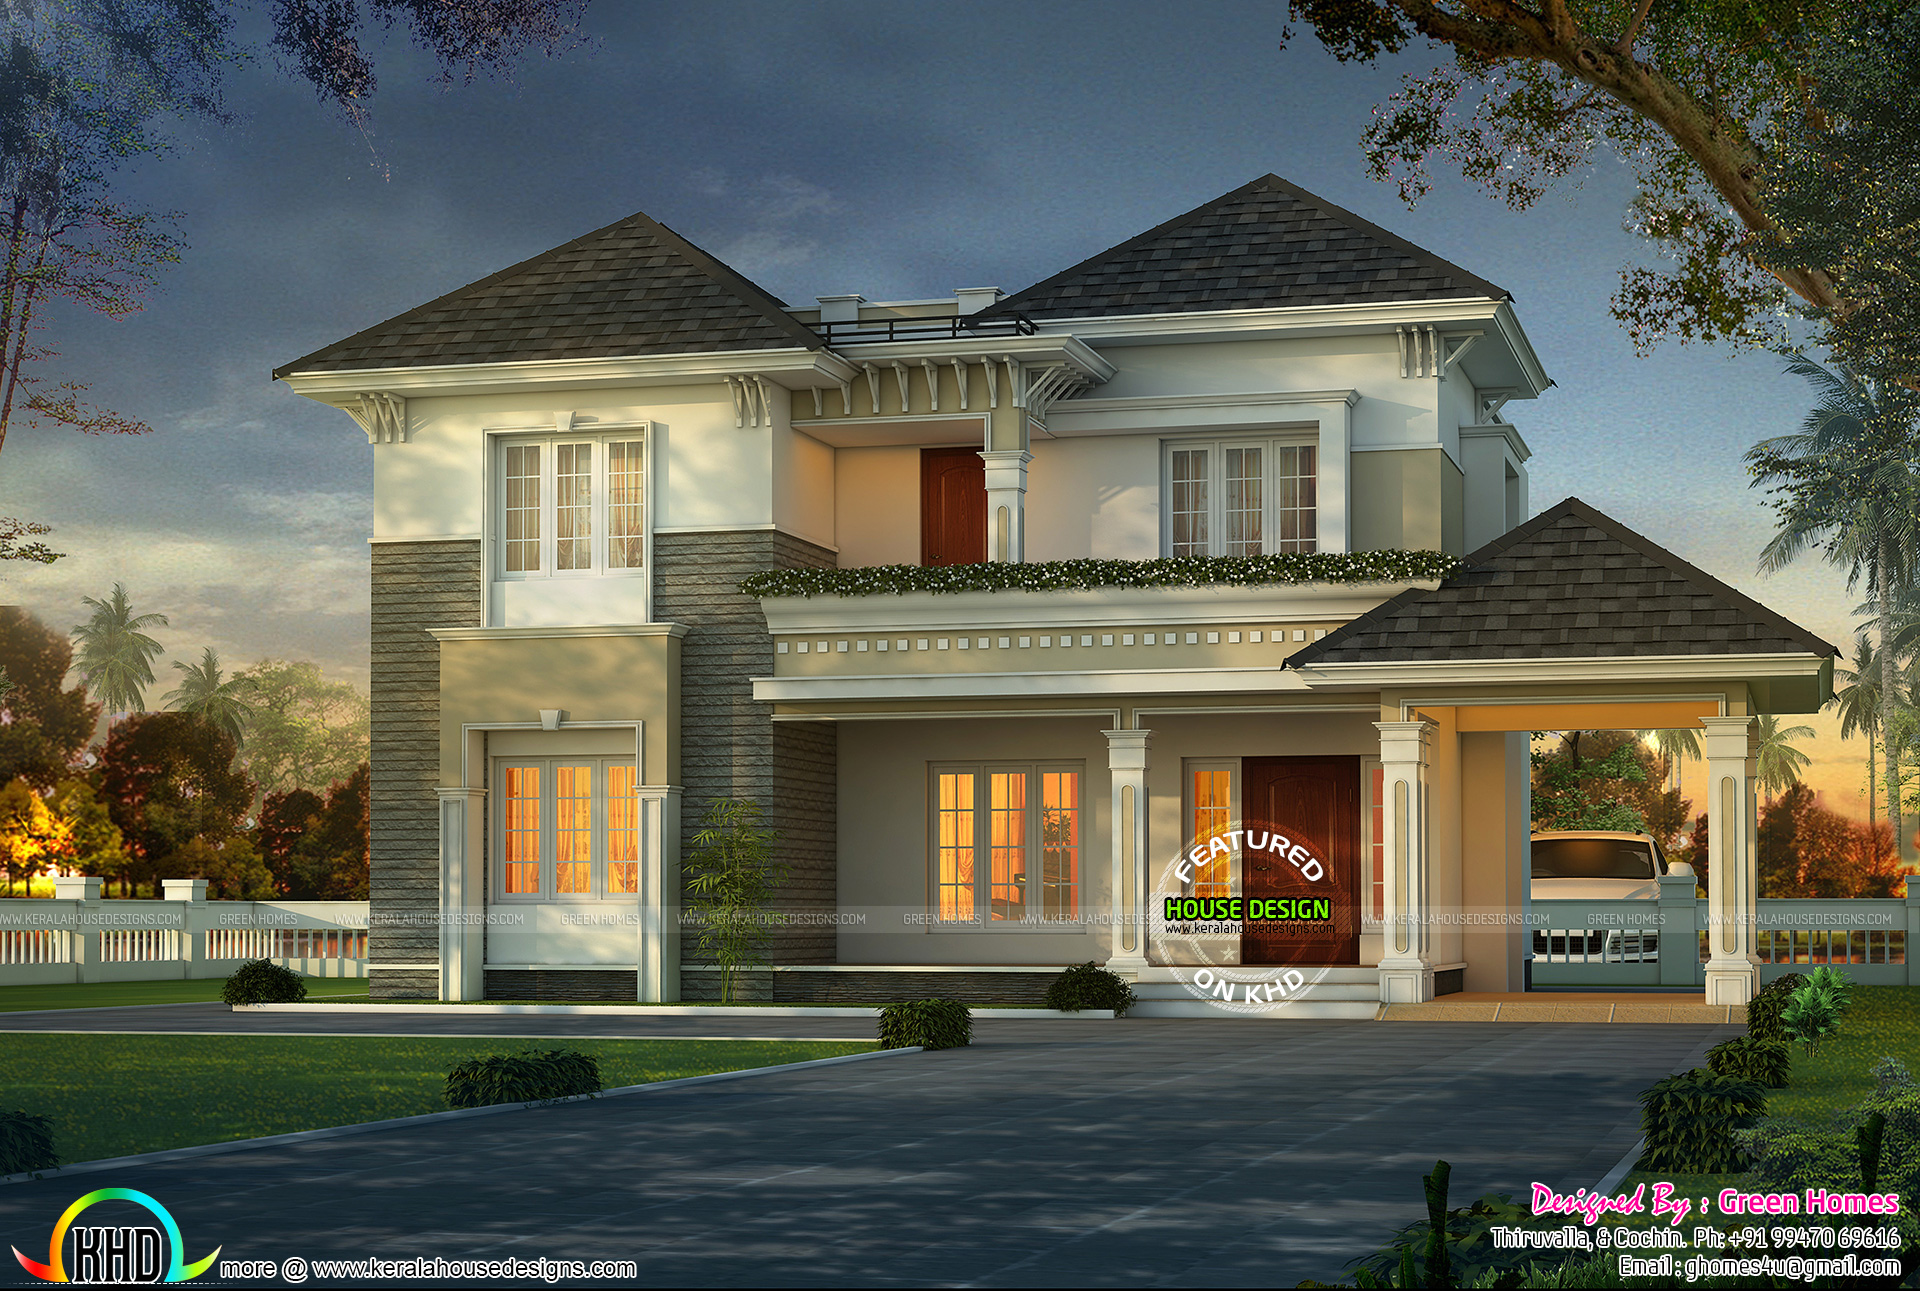 stylish and elegant home design in grey roof - Stylish Home Designs